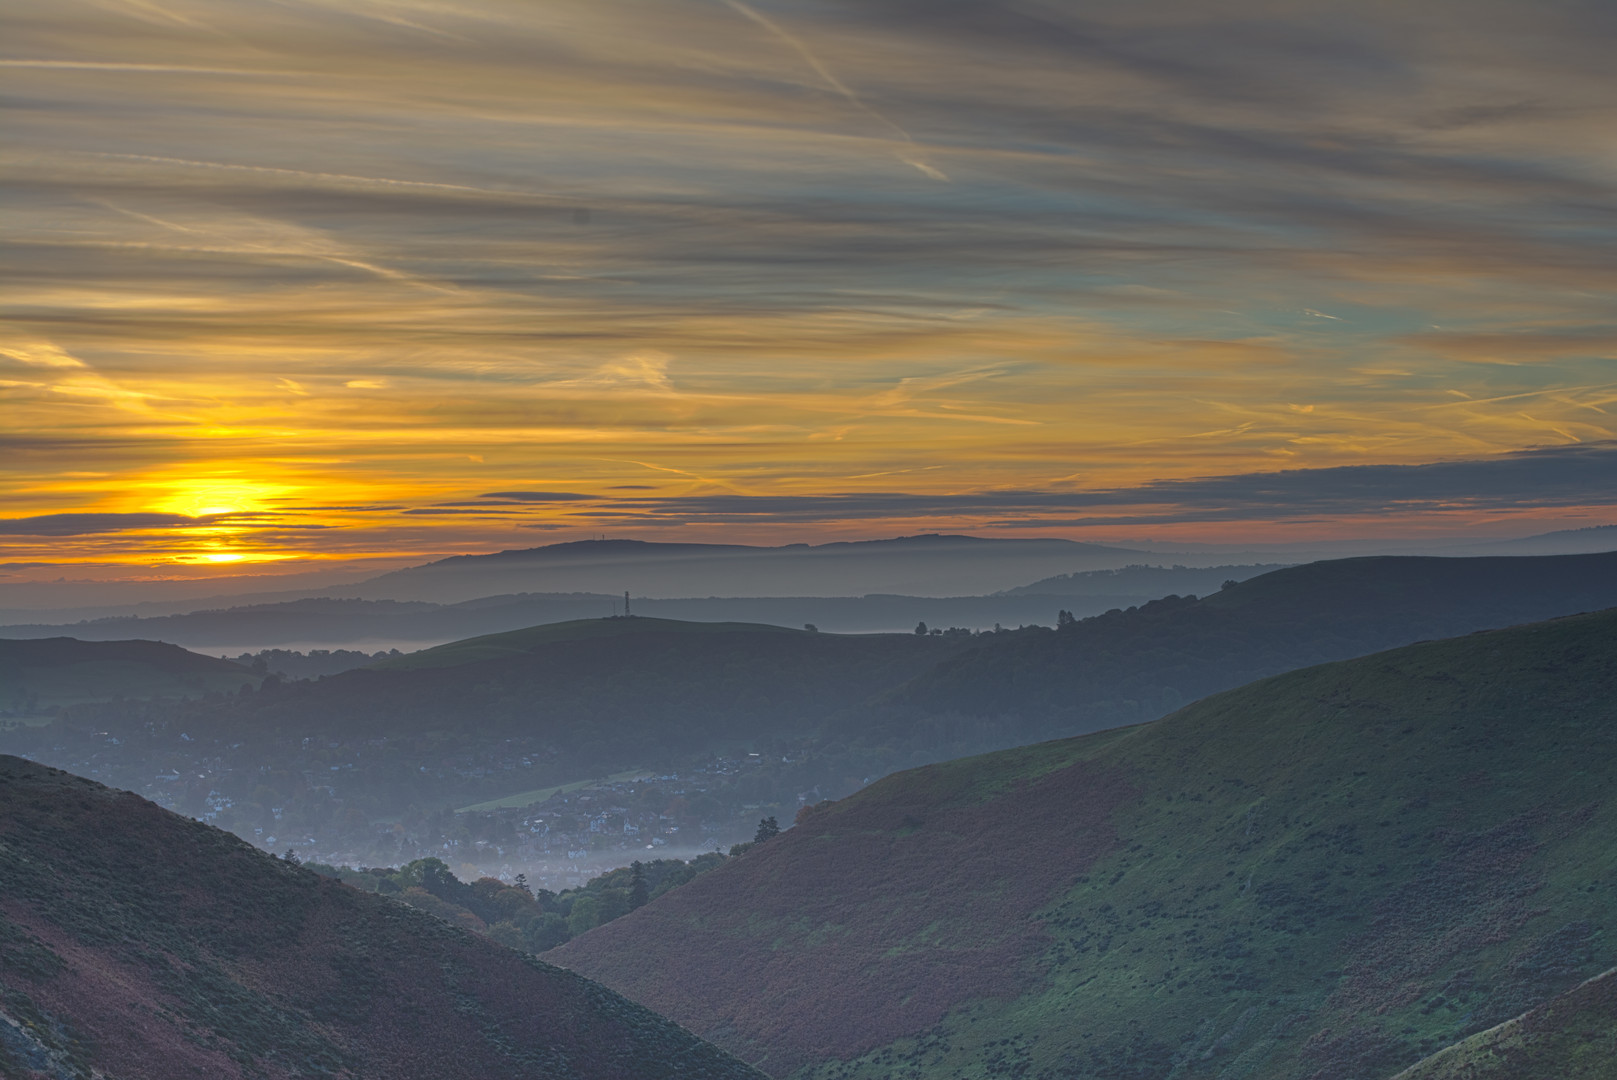 Sunrise over Church Stretton